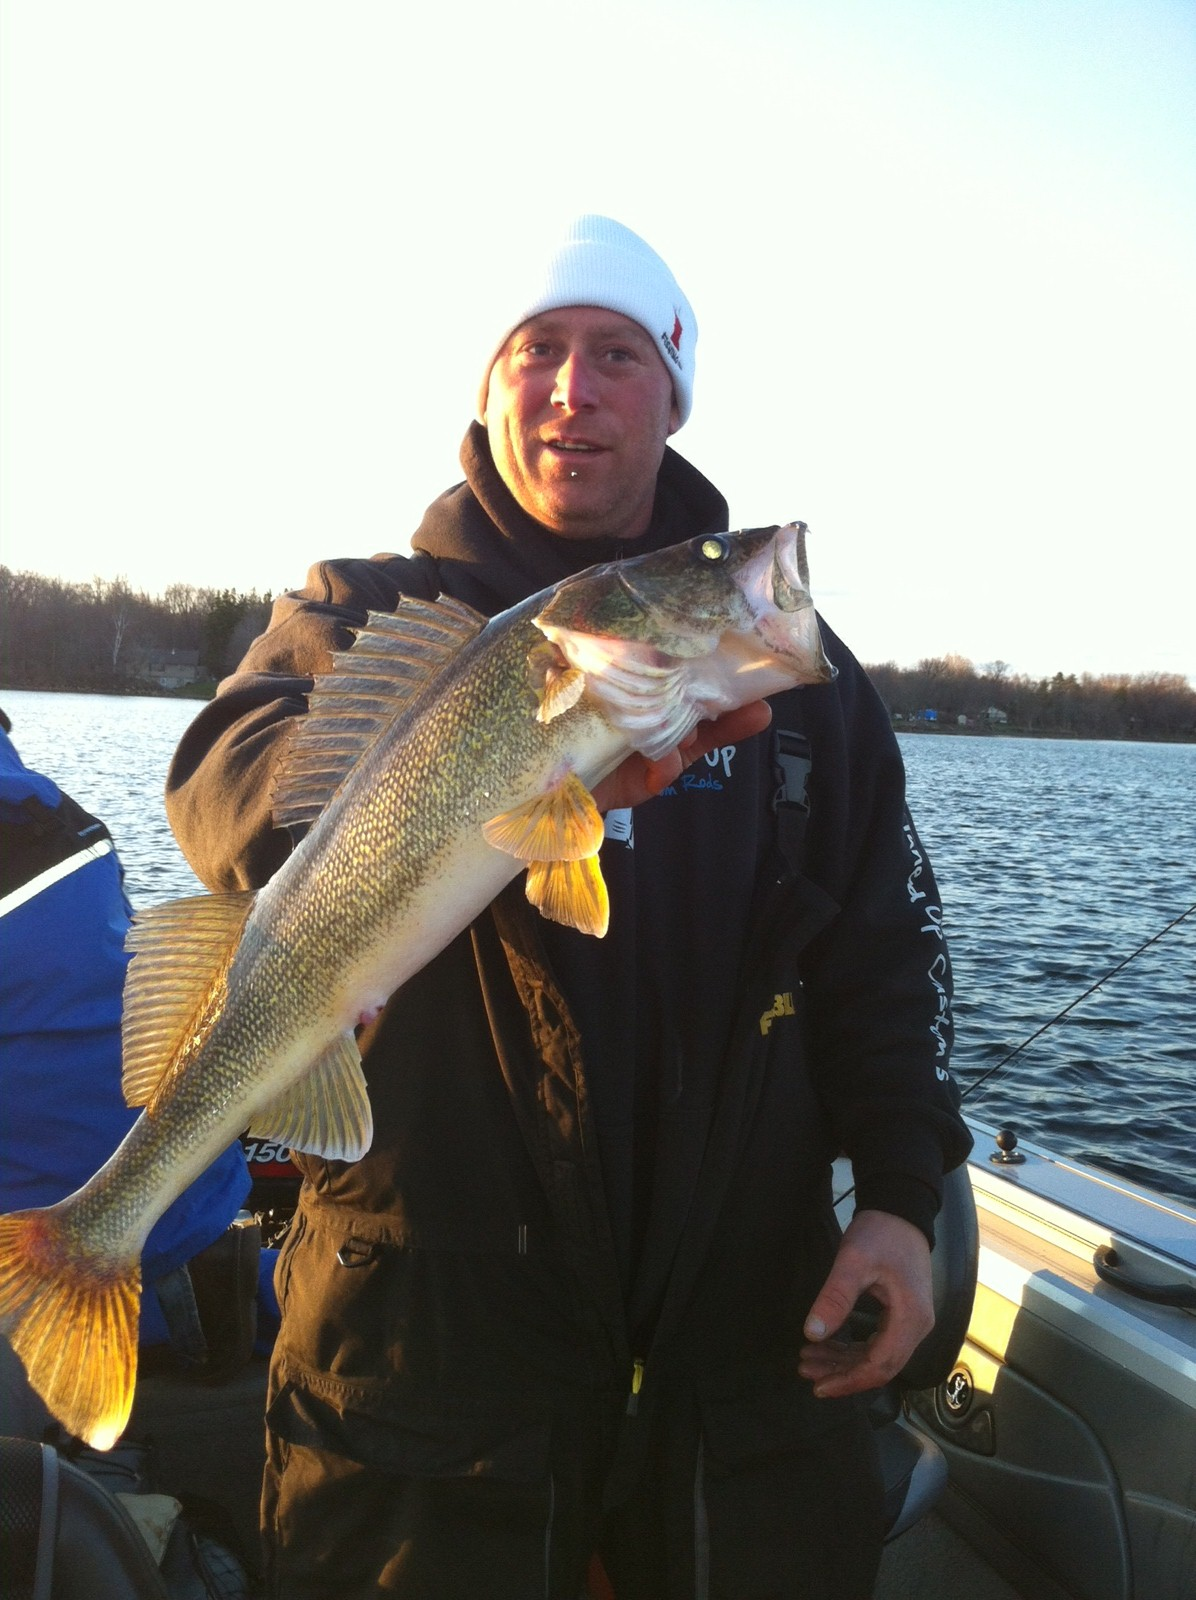 I mn fishing fishing report from mille lacs lake mn 5 11 for Mille lacs lake fishing